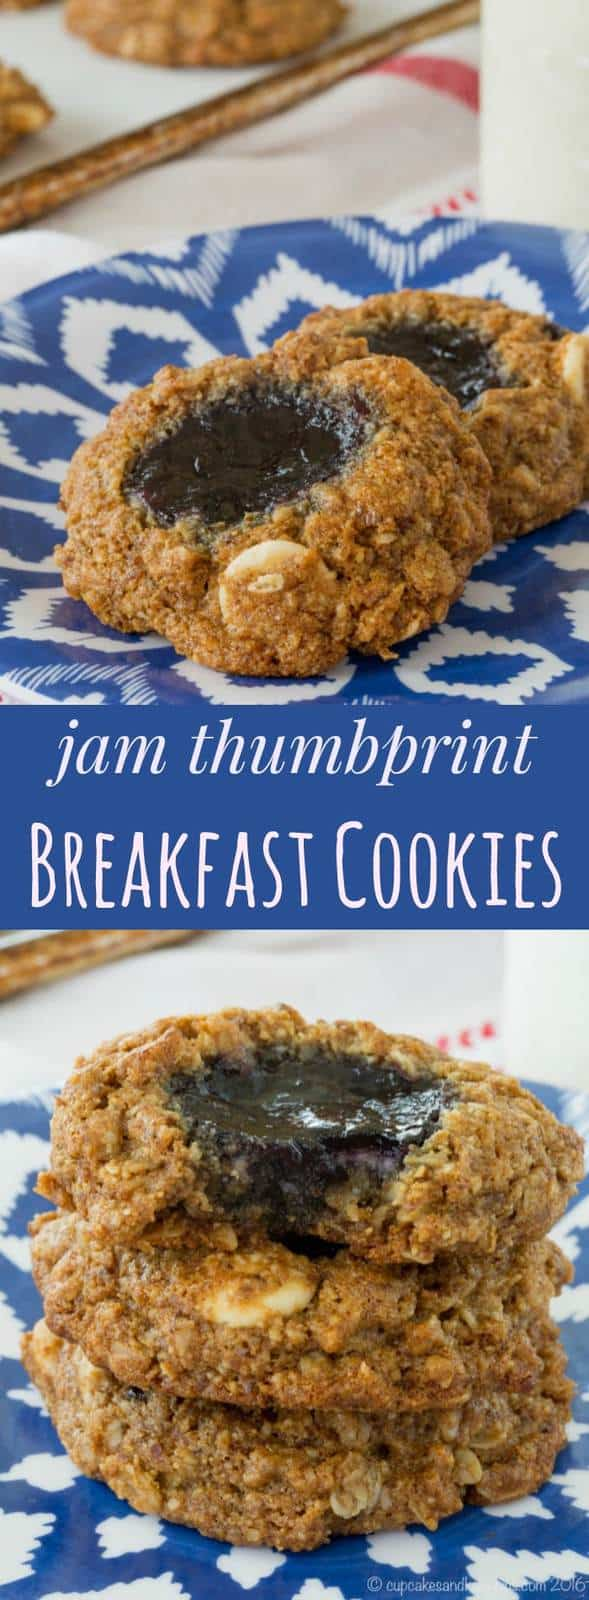 Jam Thumbprint Breakfast Cookies - start your day with this healthy cookie recipe that can even be made gluten free and dairy free. | cupcakesandkalechips.com